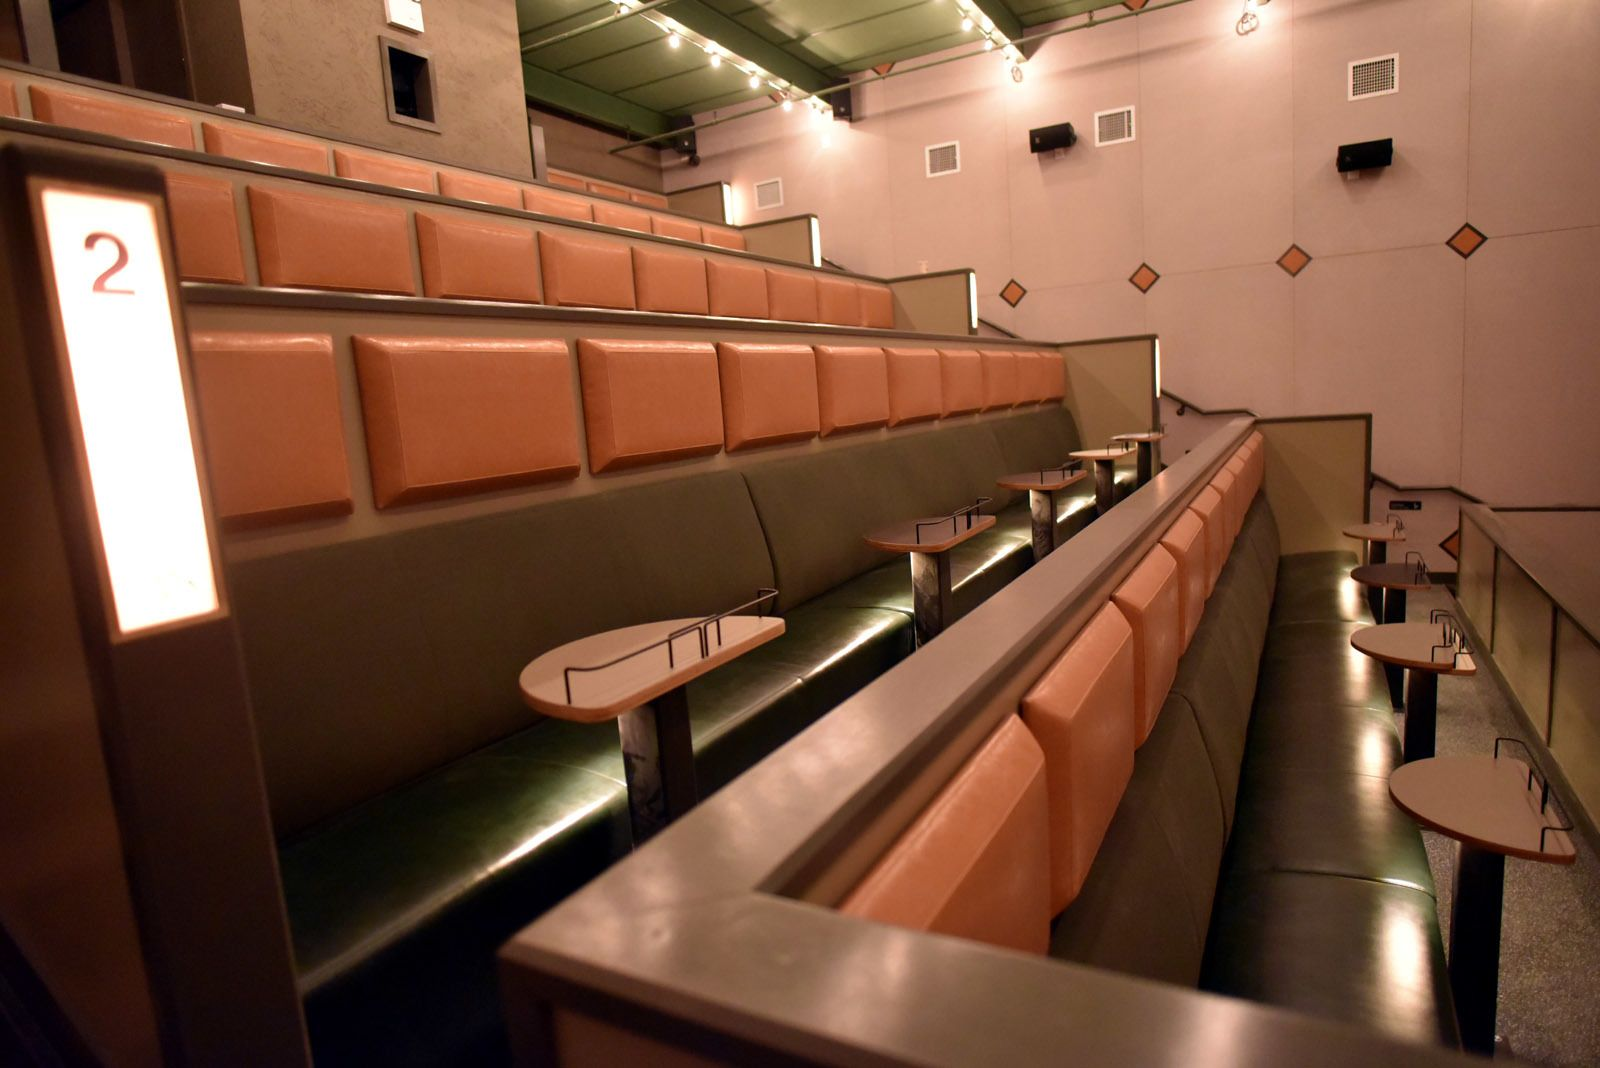 New dinein Brooklyn movie theater only charges 3 per